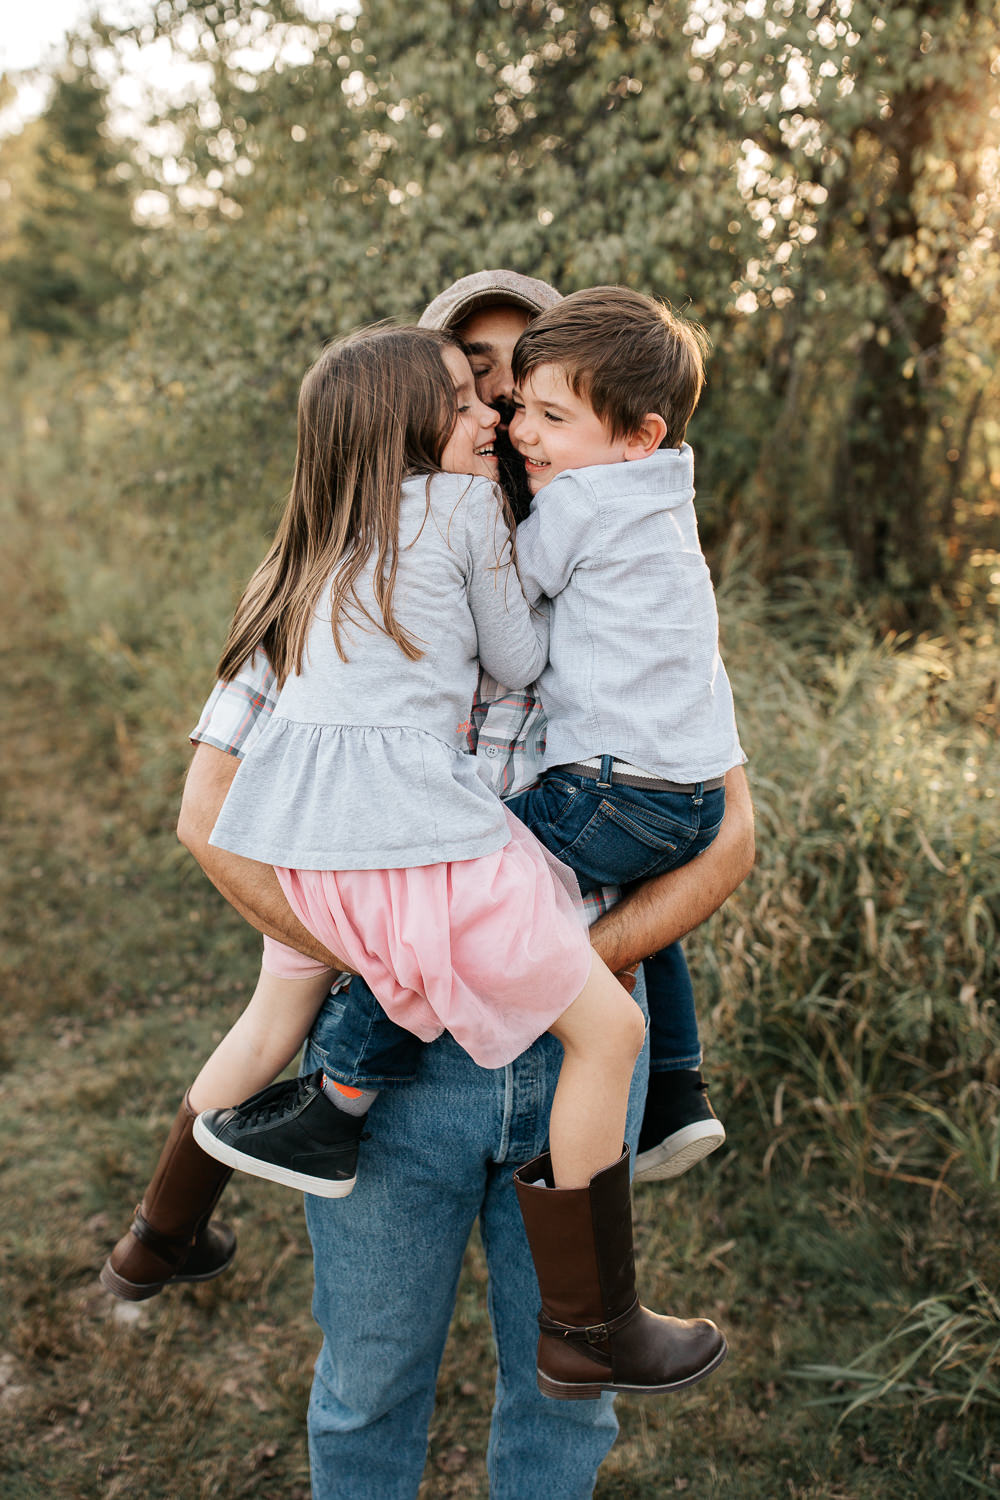 father standing in field holding 5 year old girl and 4 year old boy in his arms as daughter and son hug him, dad's face barely visible - Stouffville Lifestyle Photography